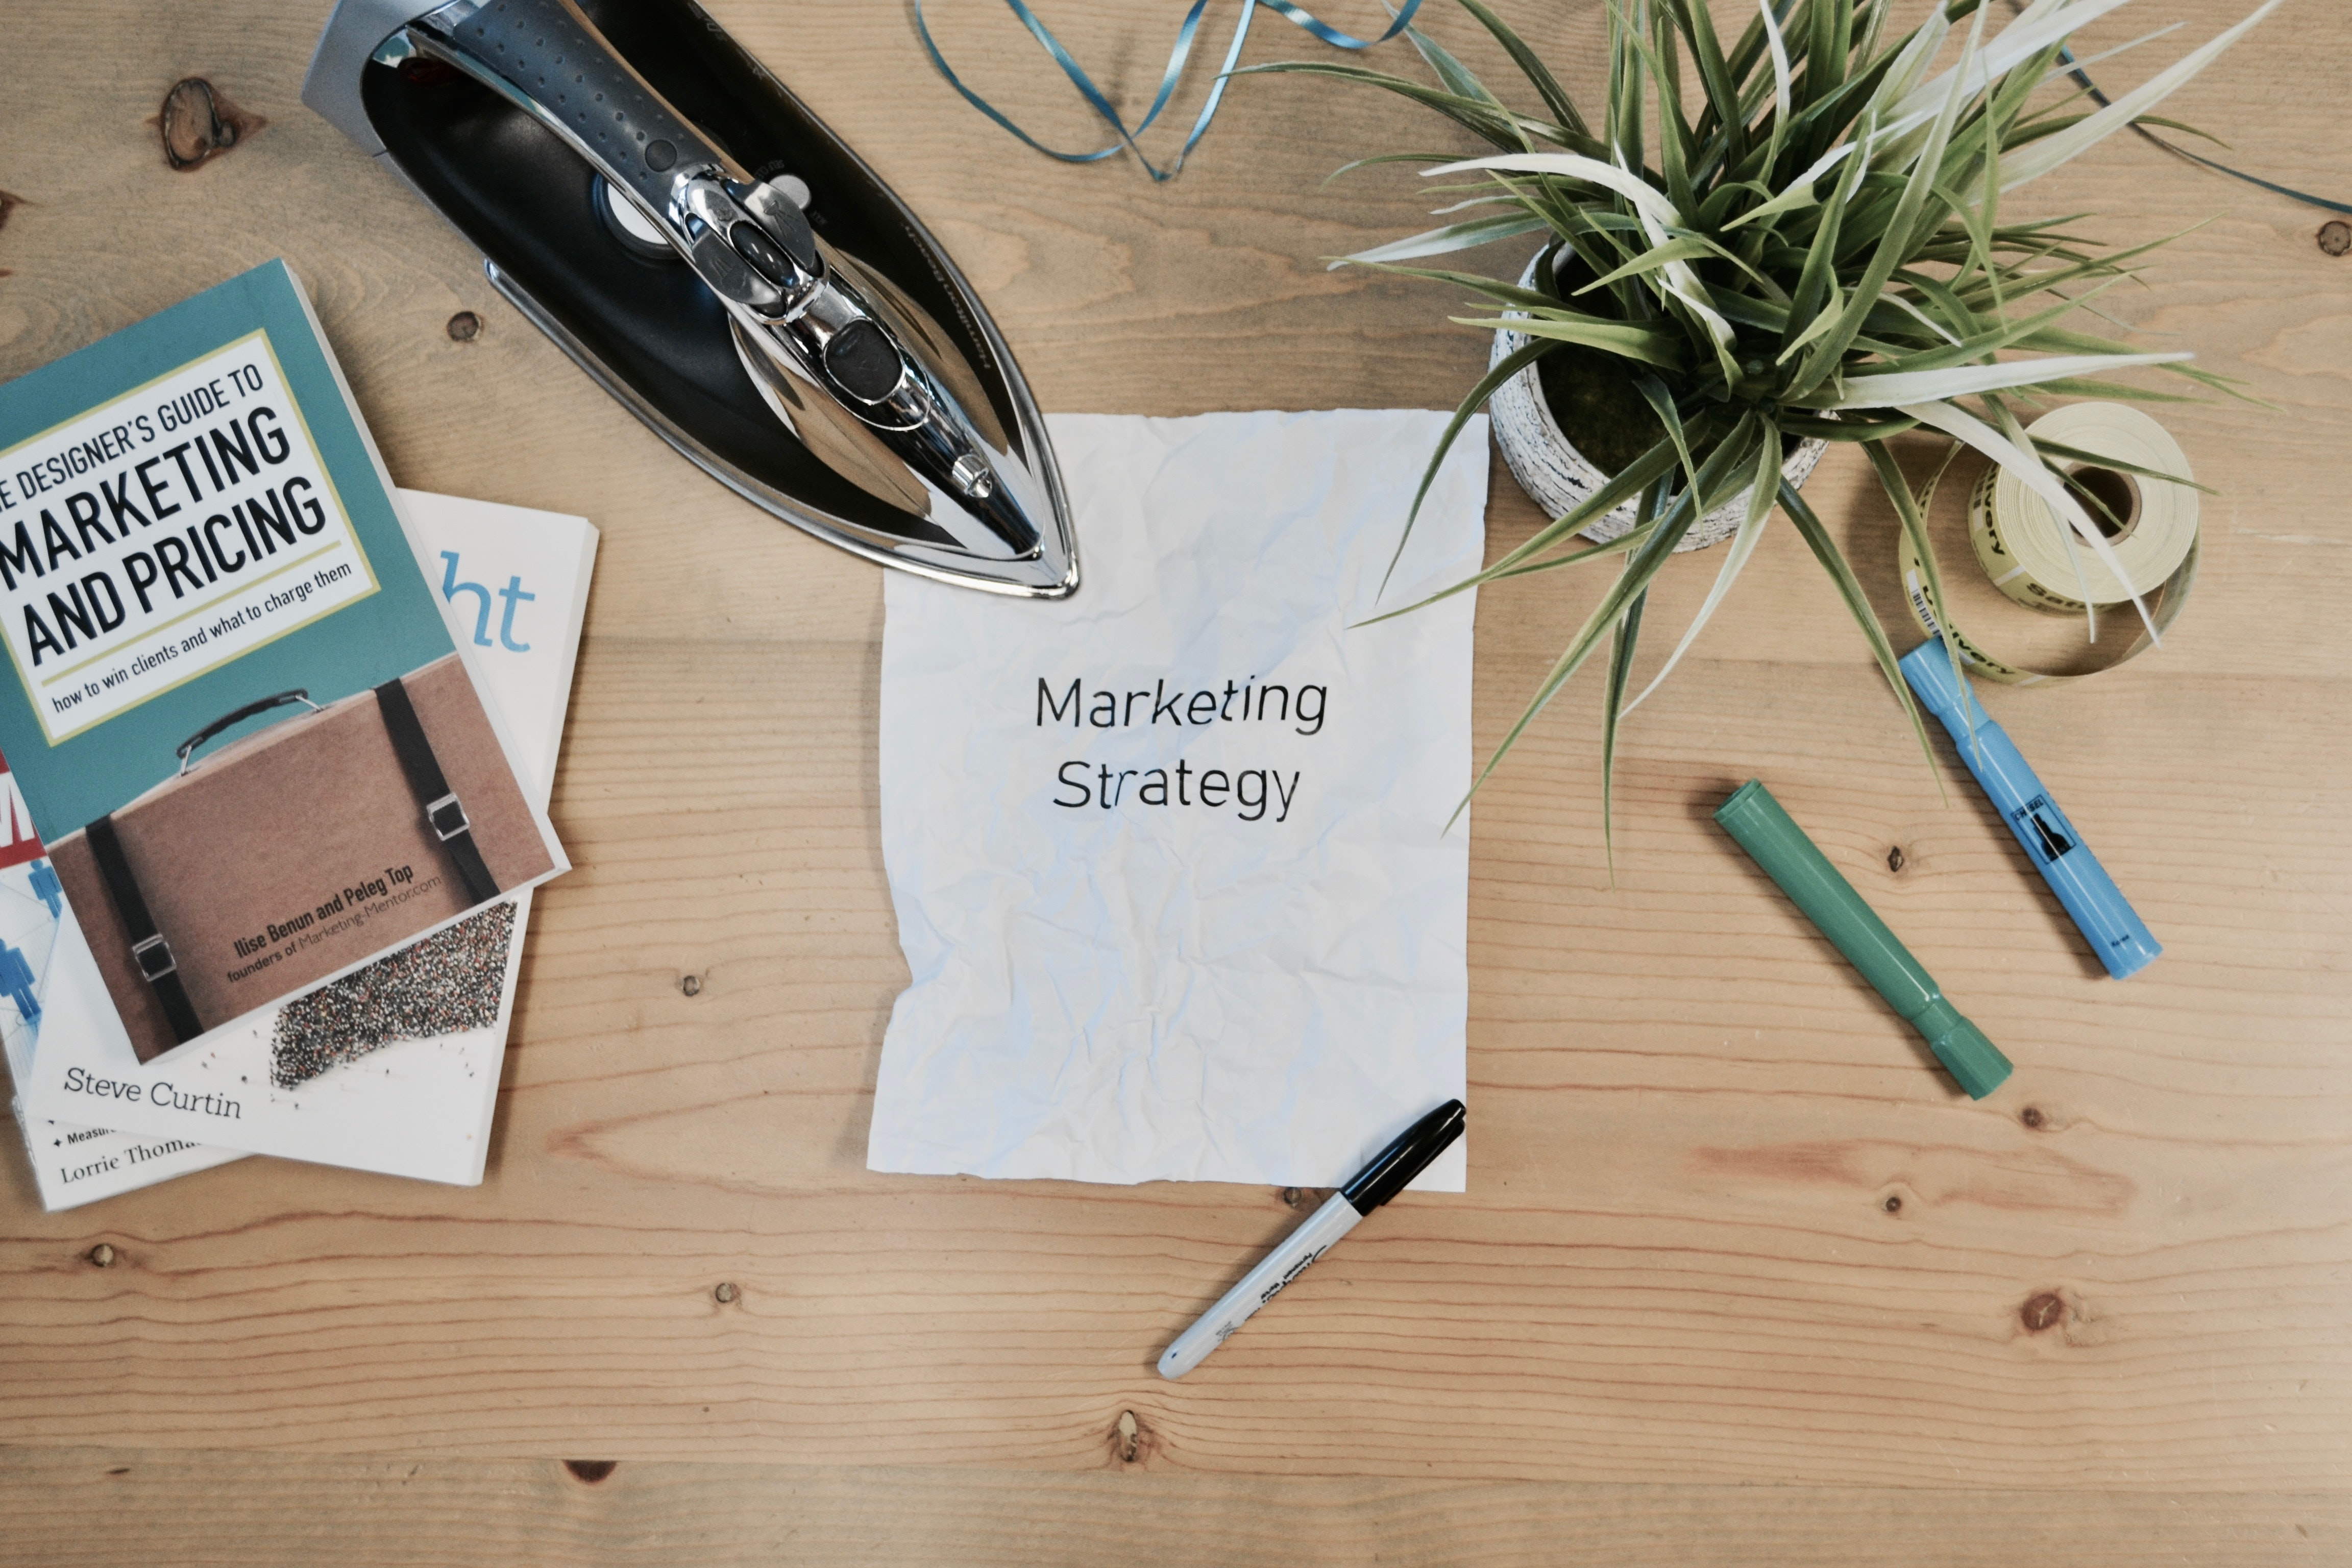 white printing paper with Marketing Strategy text